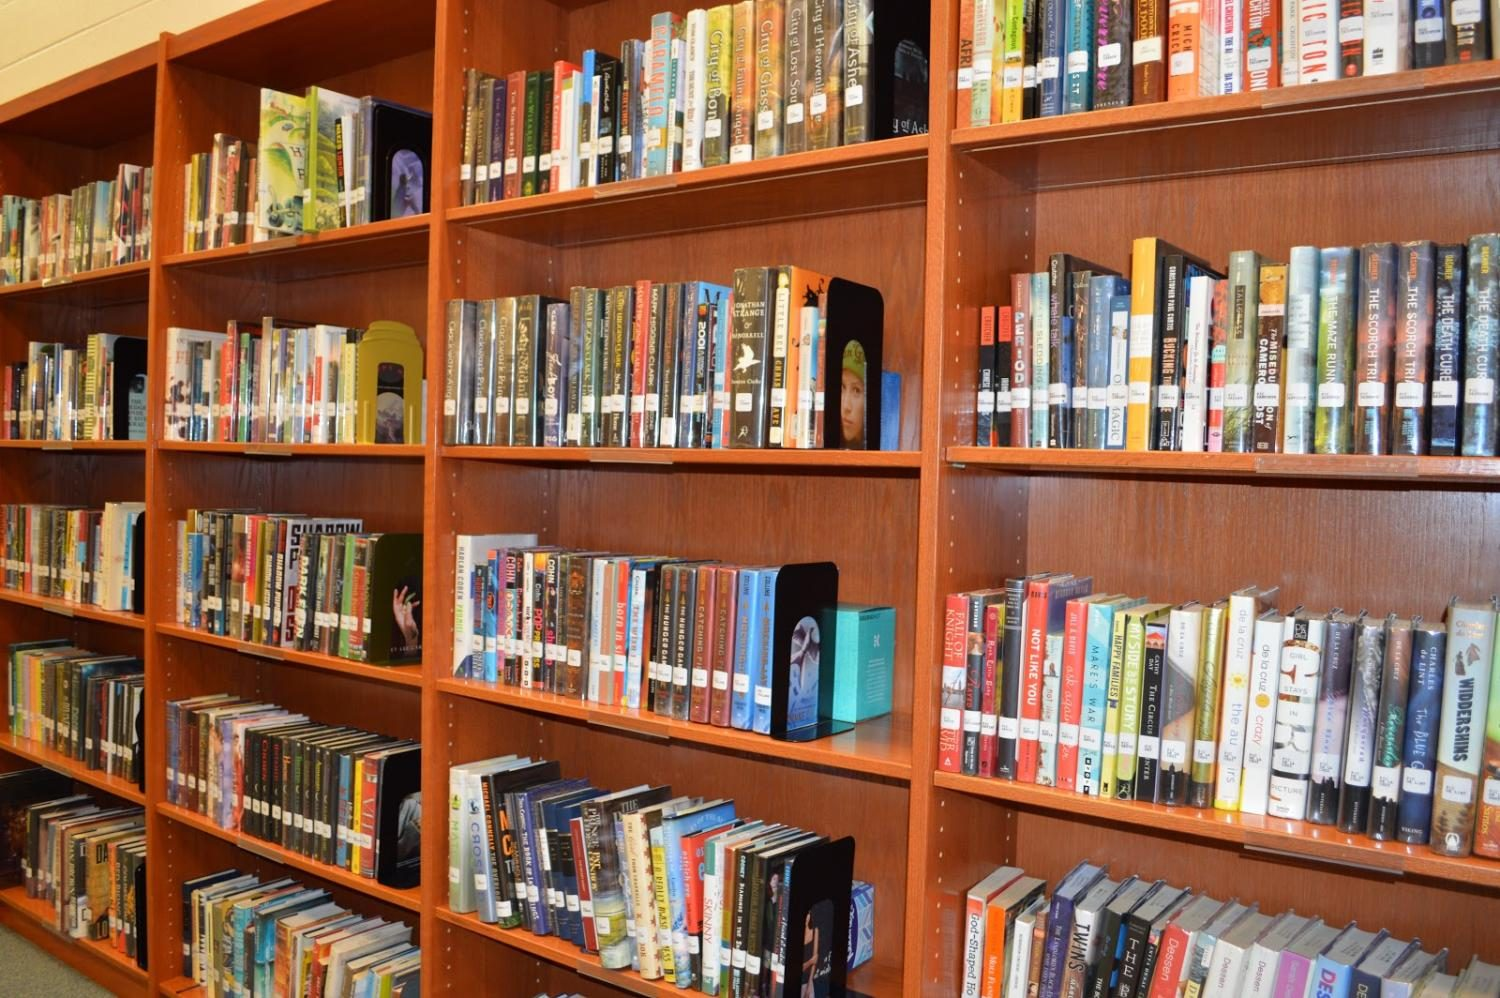 The+Kaneland+High+School+library%2C+is+filled+with+books.+If+you+are+looking+for+a+certain+book%2Cthe+library+catalog+is+available.